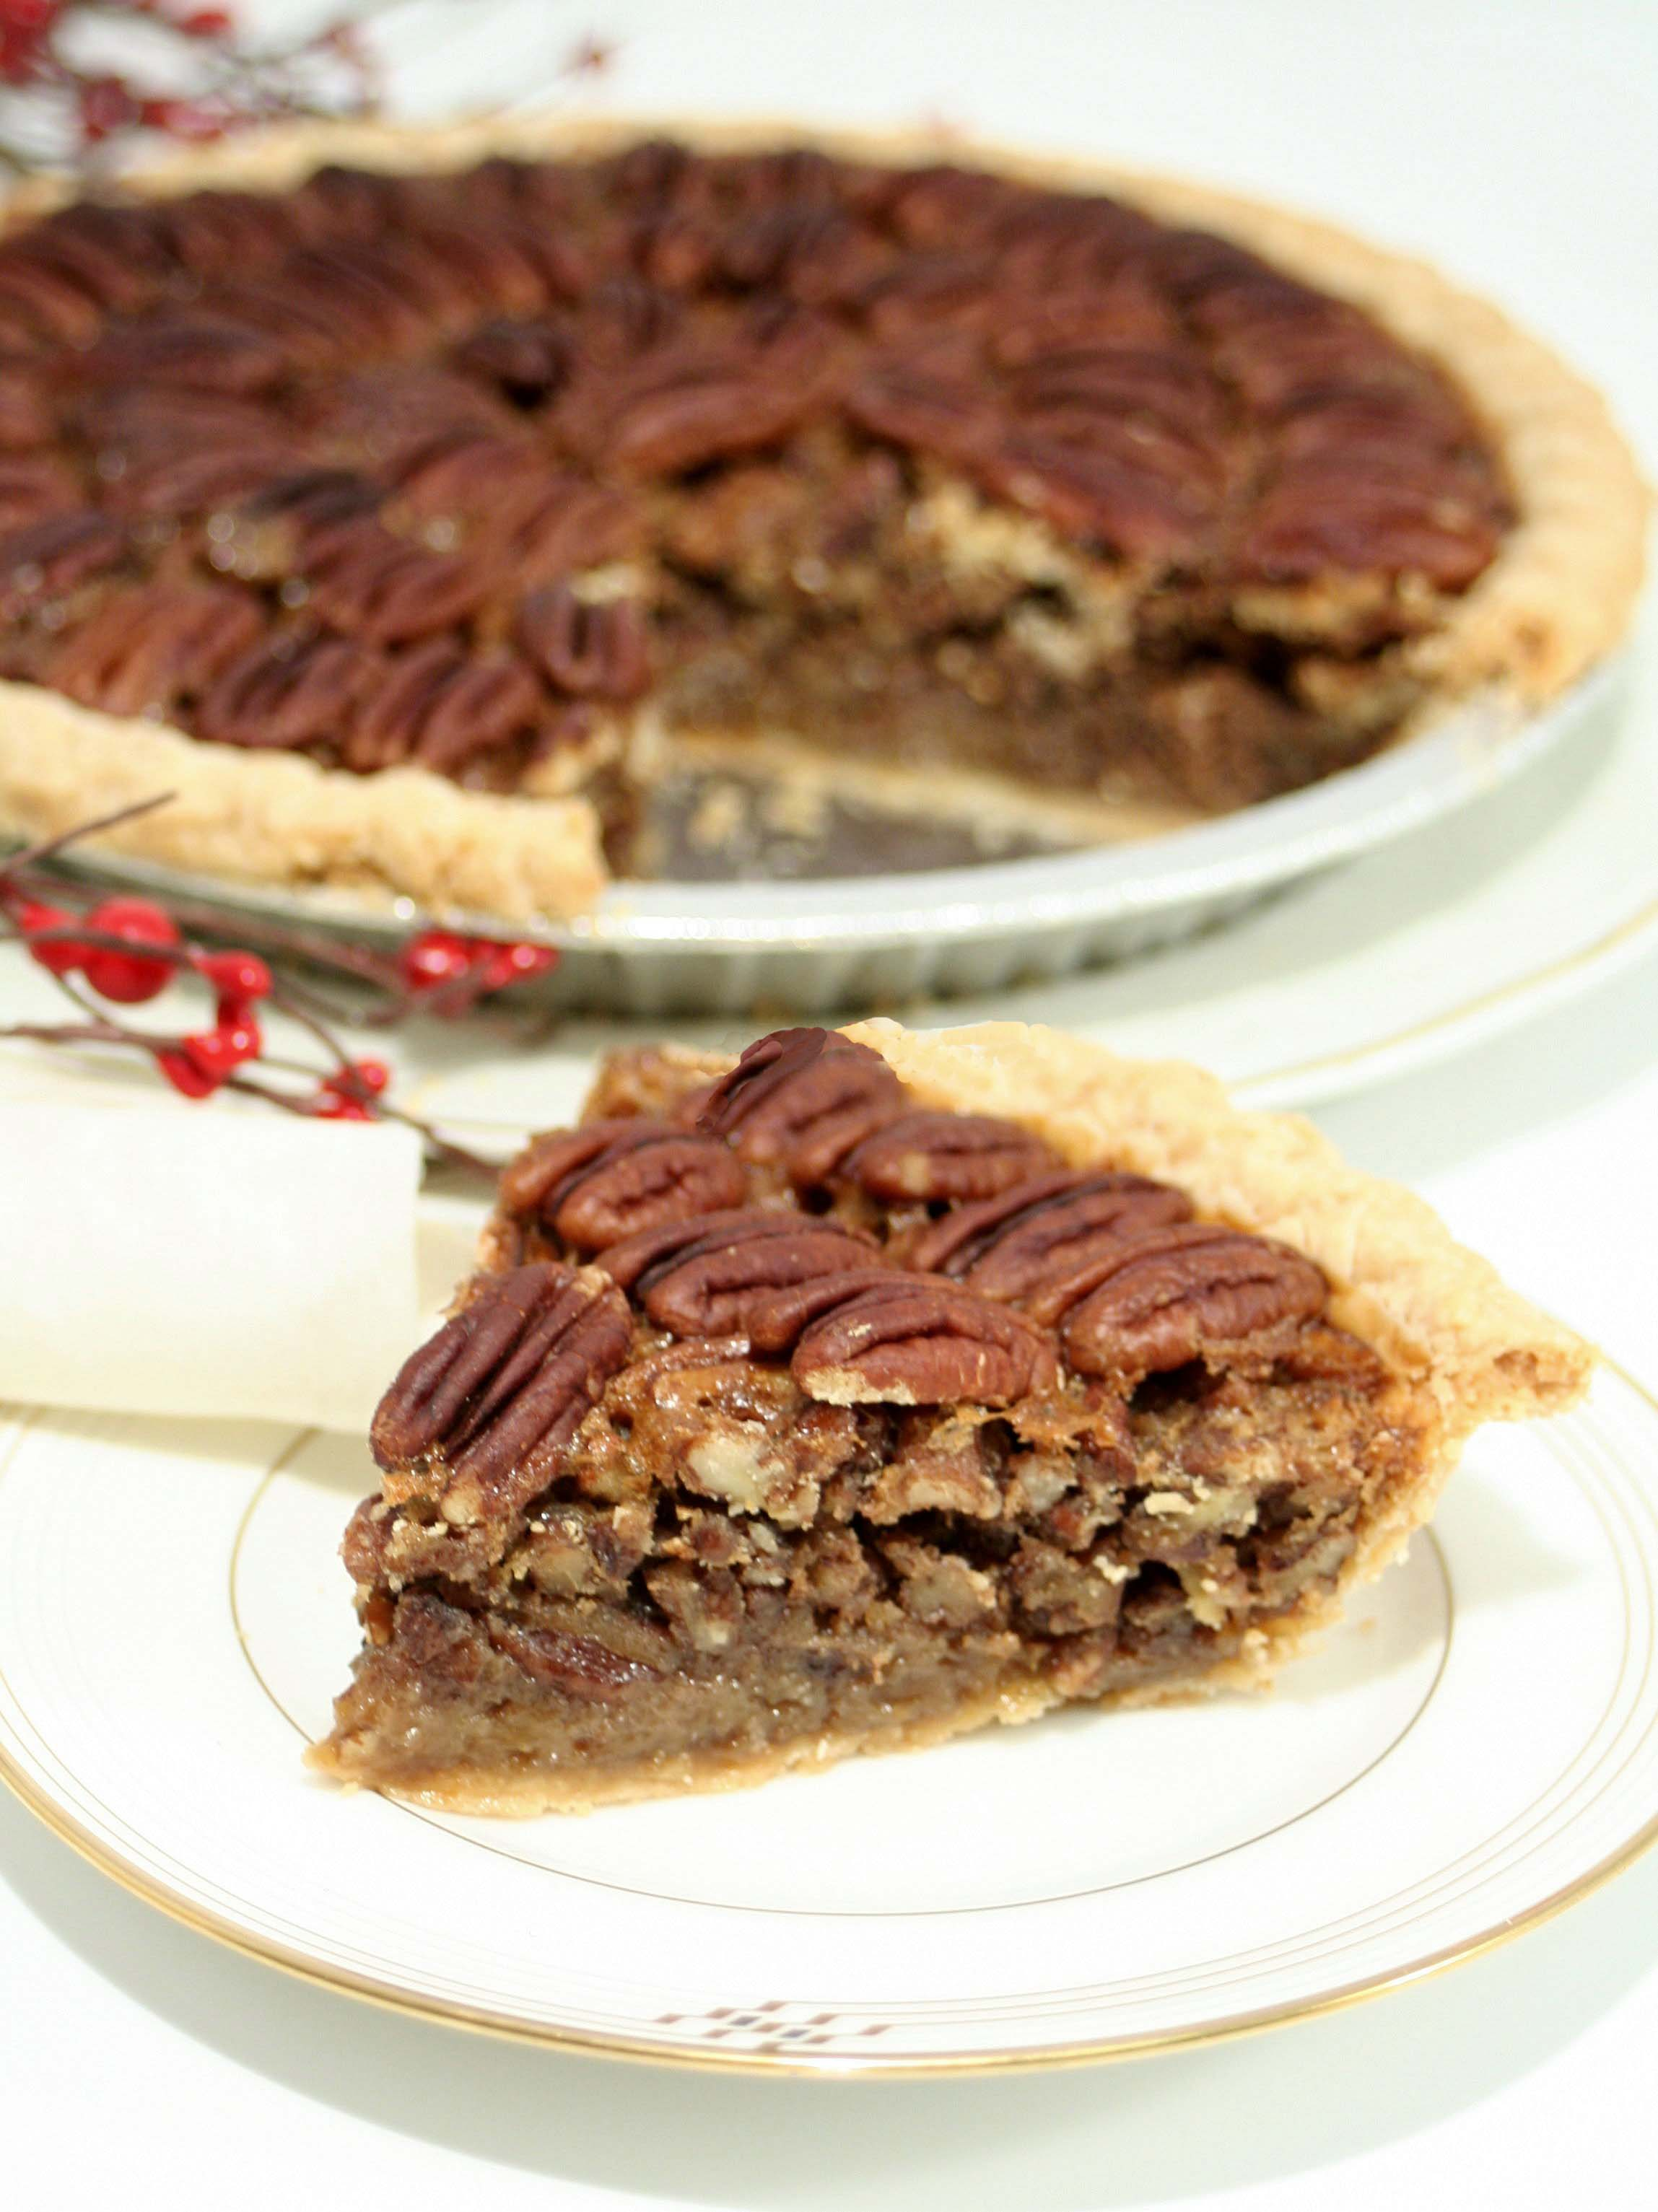 Aunt Bonnie's Pecan Pie: 10 Yummy Thanksgiving Dessert Ideas | Cheap Is The New Classy